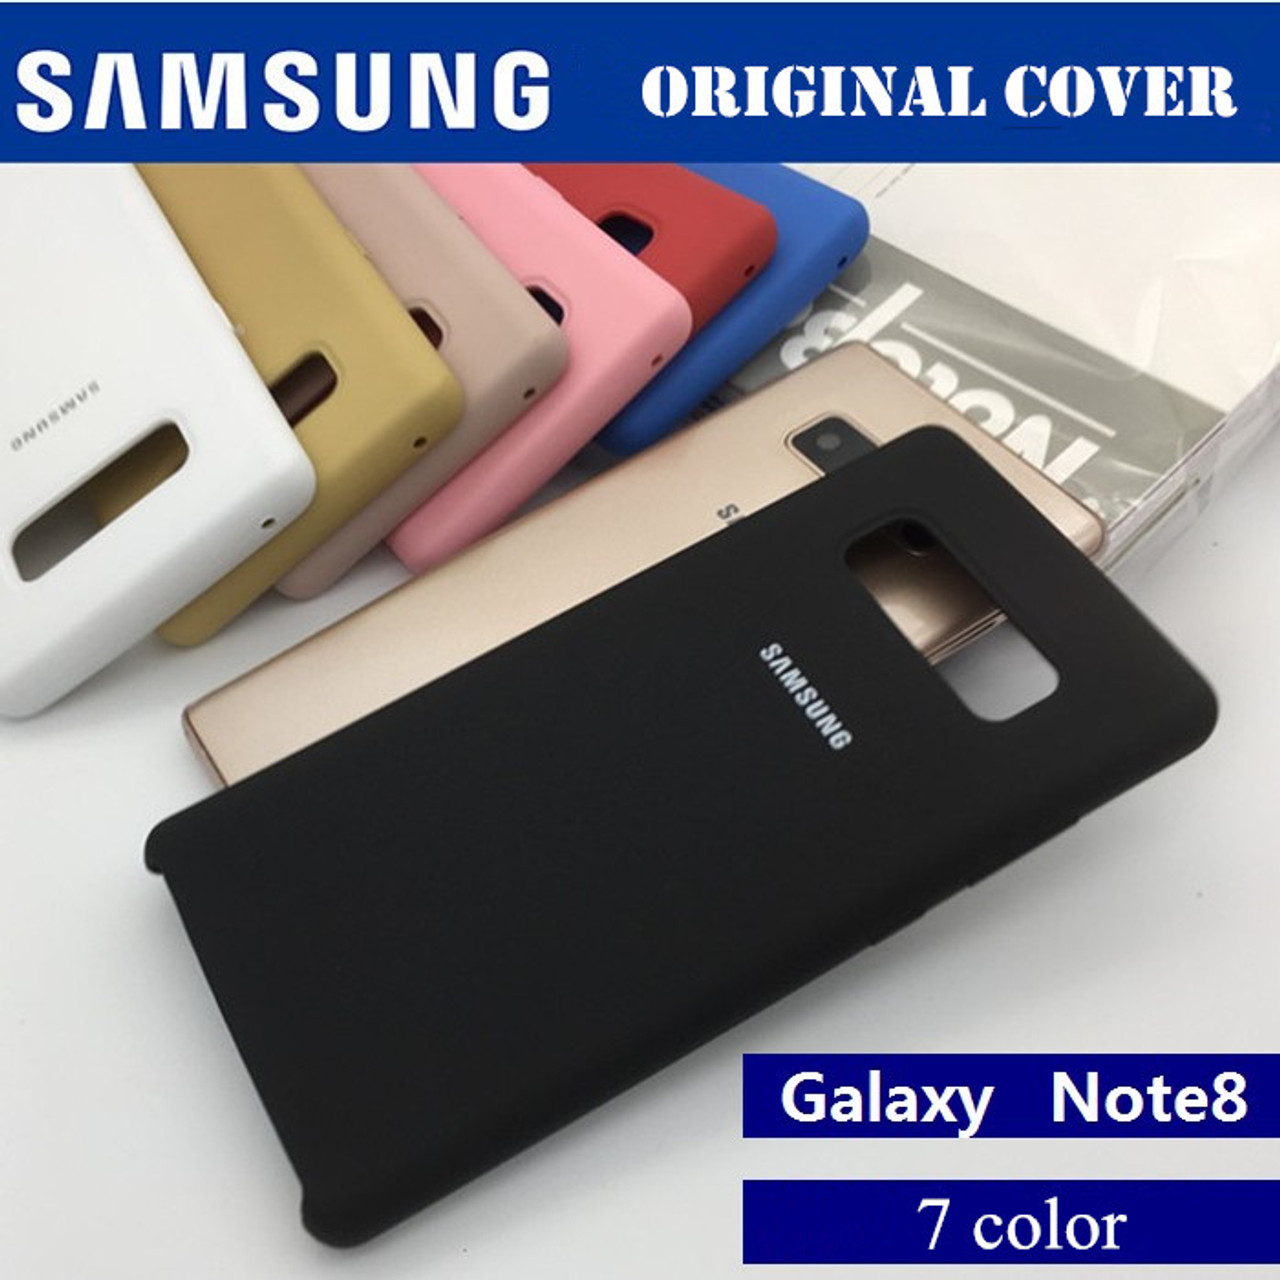 sports shoes 588ac 938de 100% Original Samsung Galaxy Note 8 N9500 N950F Silicone Cover Back Case  Protection - Anti-Wear case 7 colour